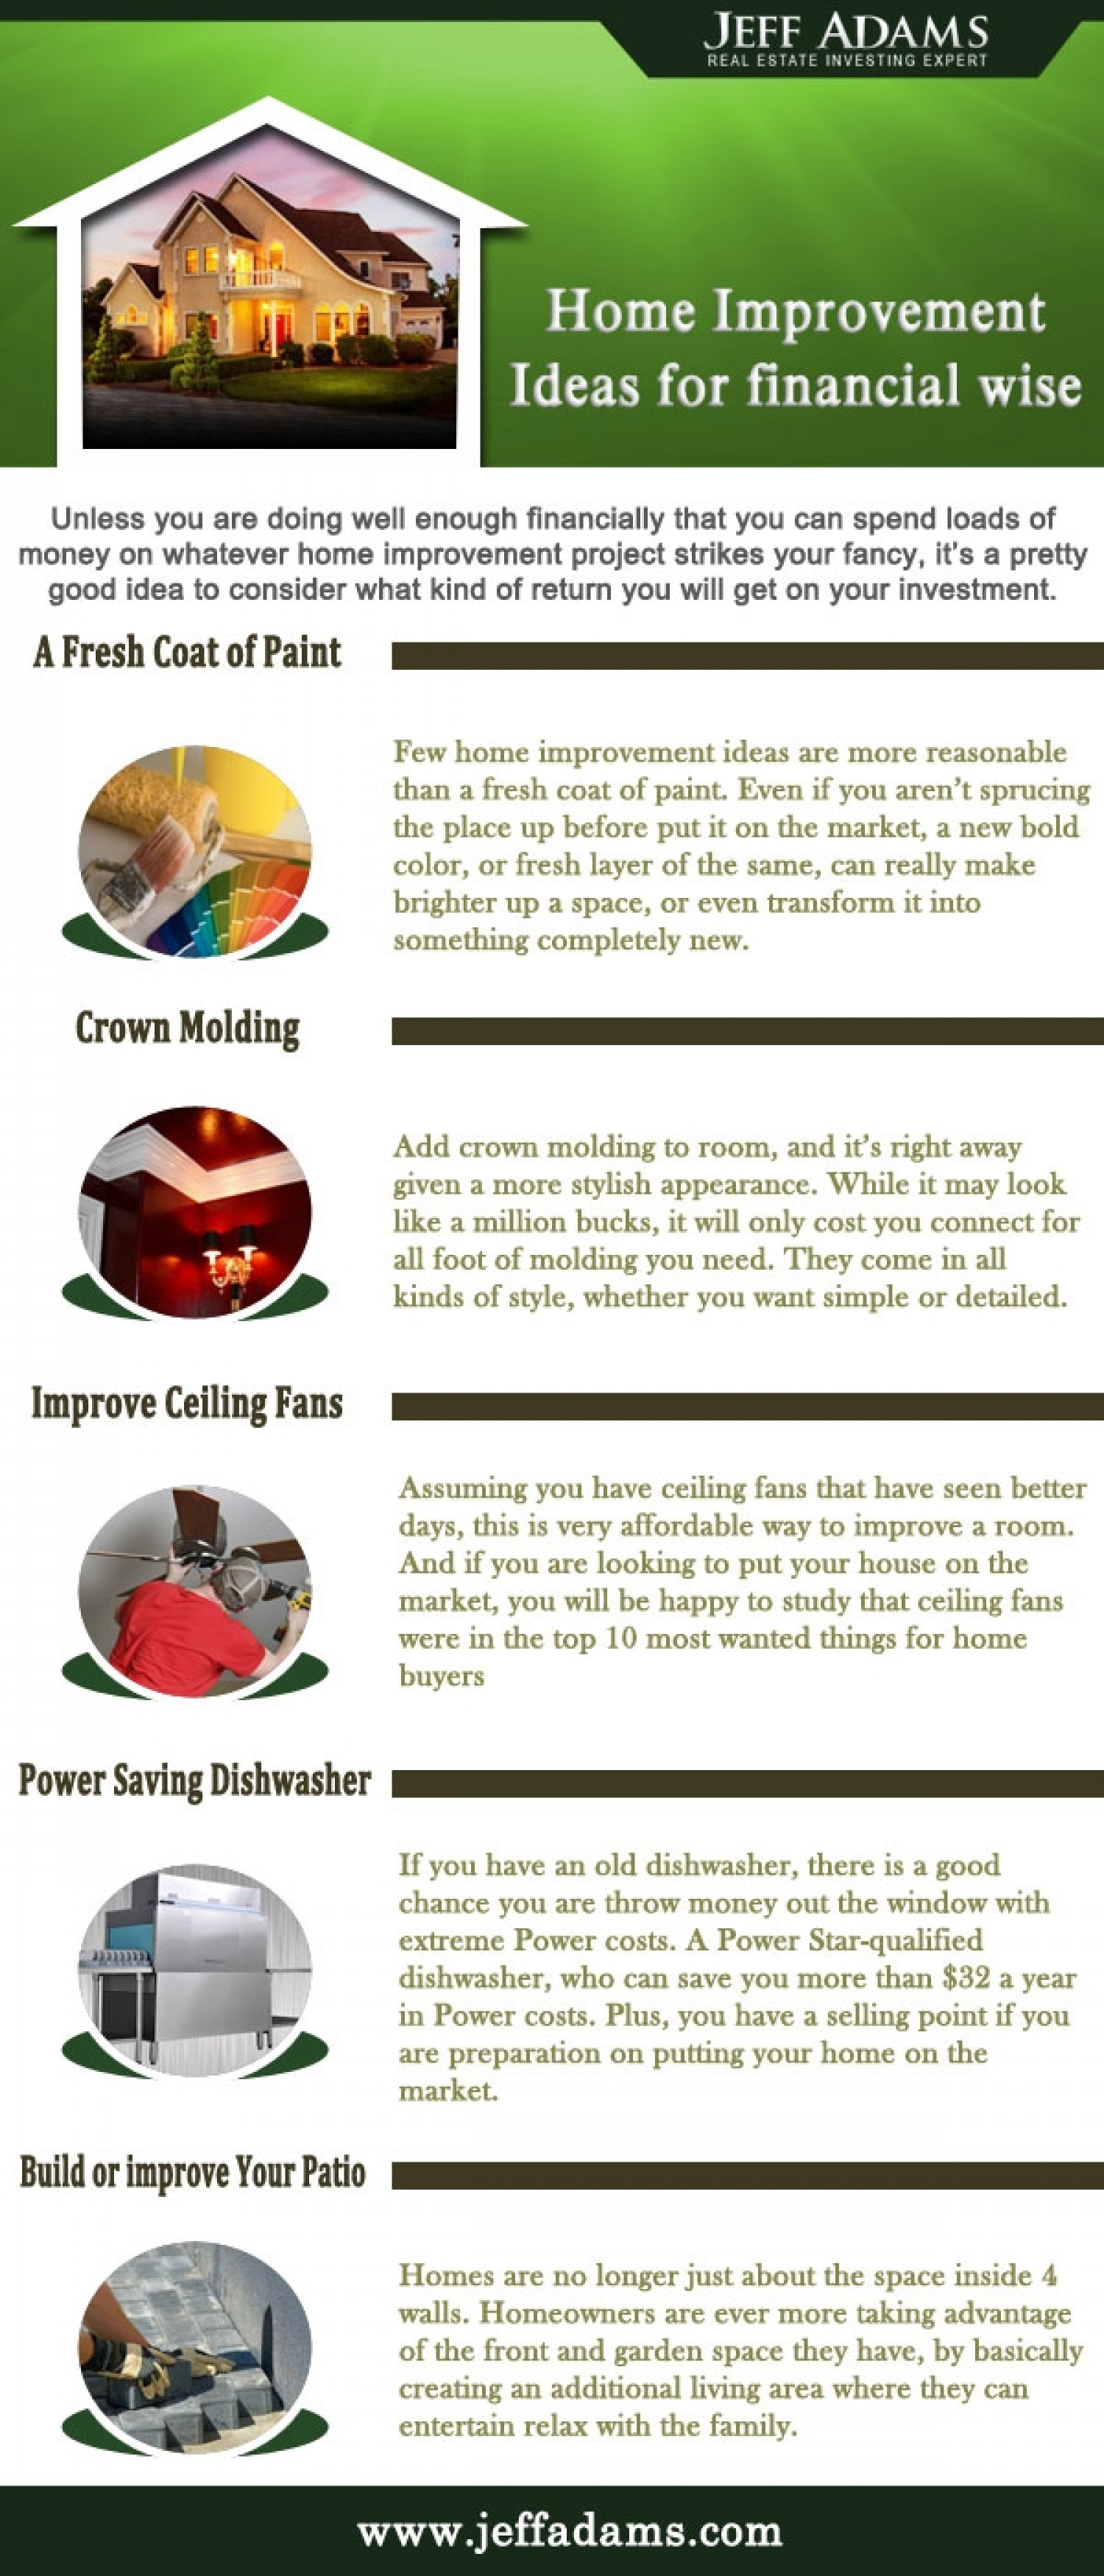 Home improvement tips to help you out home improvement ideas - Home Improvement Ideas For Financial Wise Jeff Adams Tips Infographic